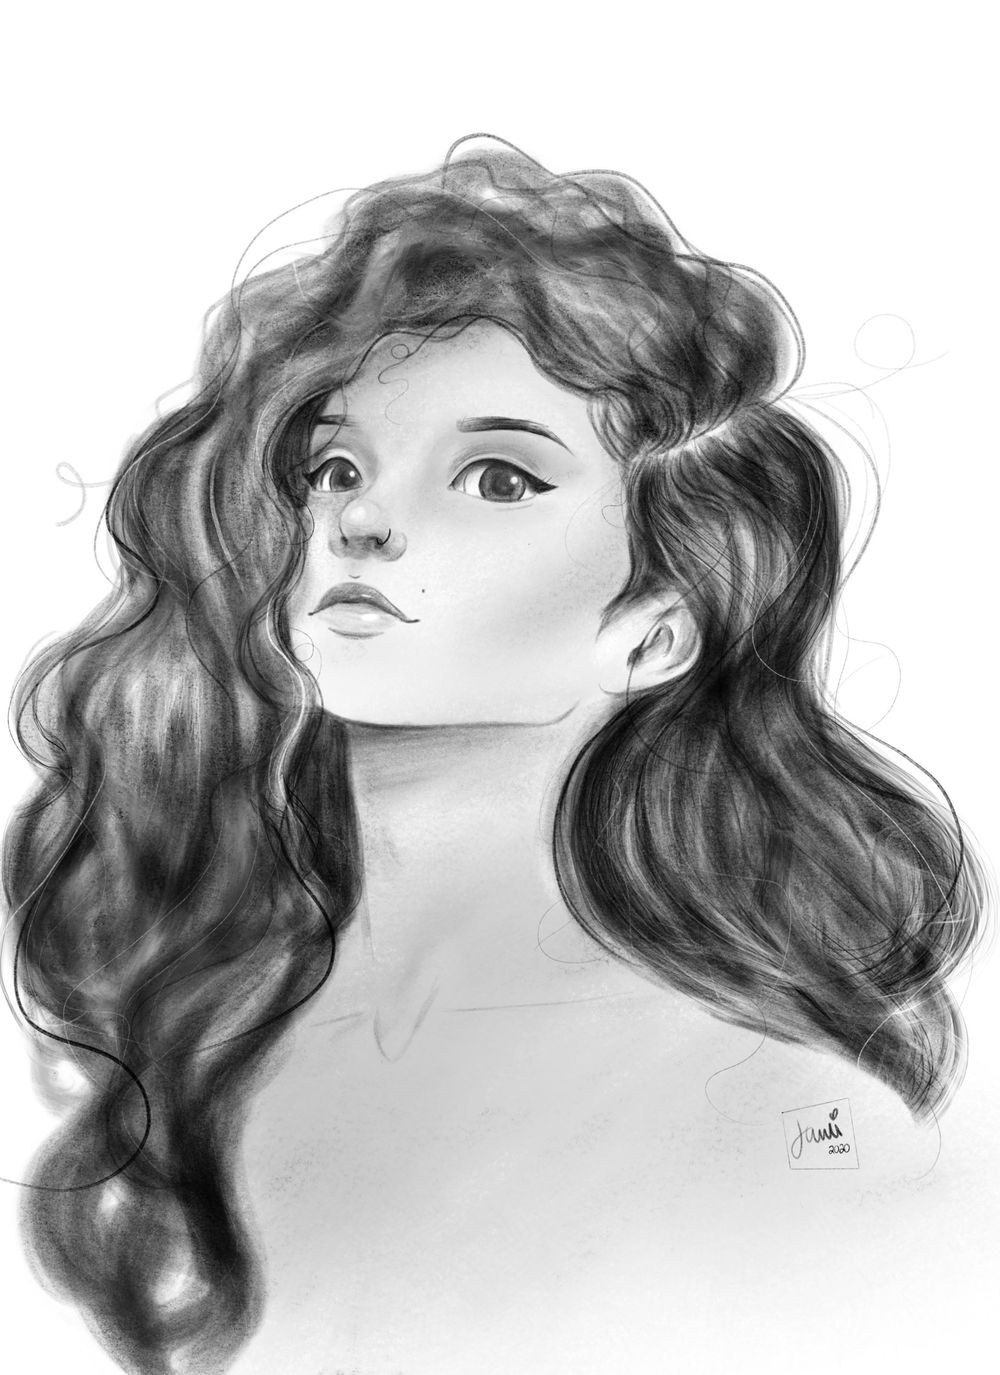 Curls - image 1 - student project